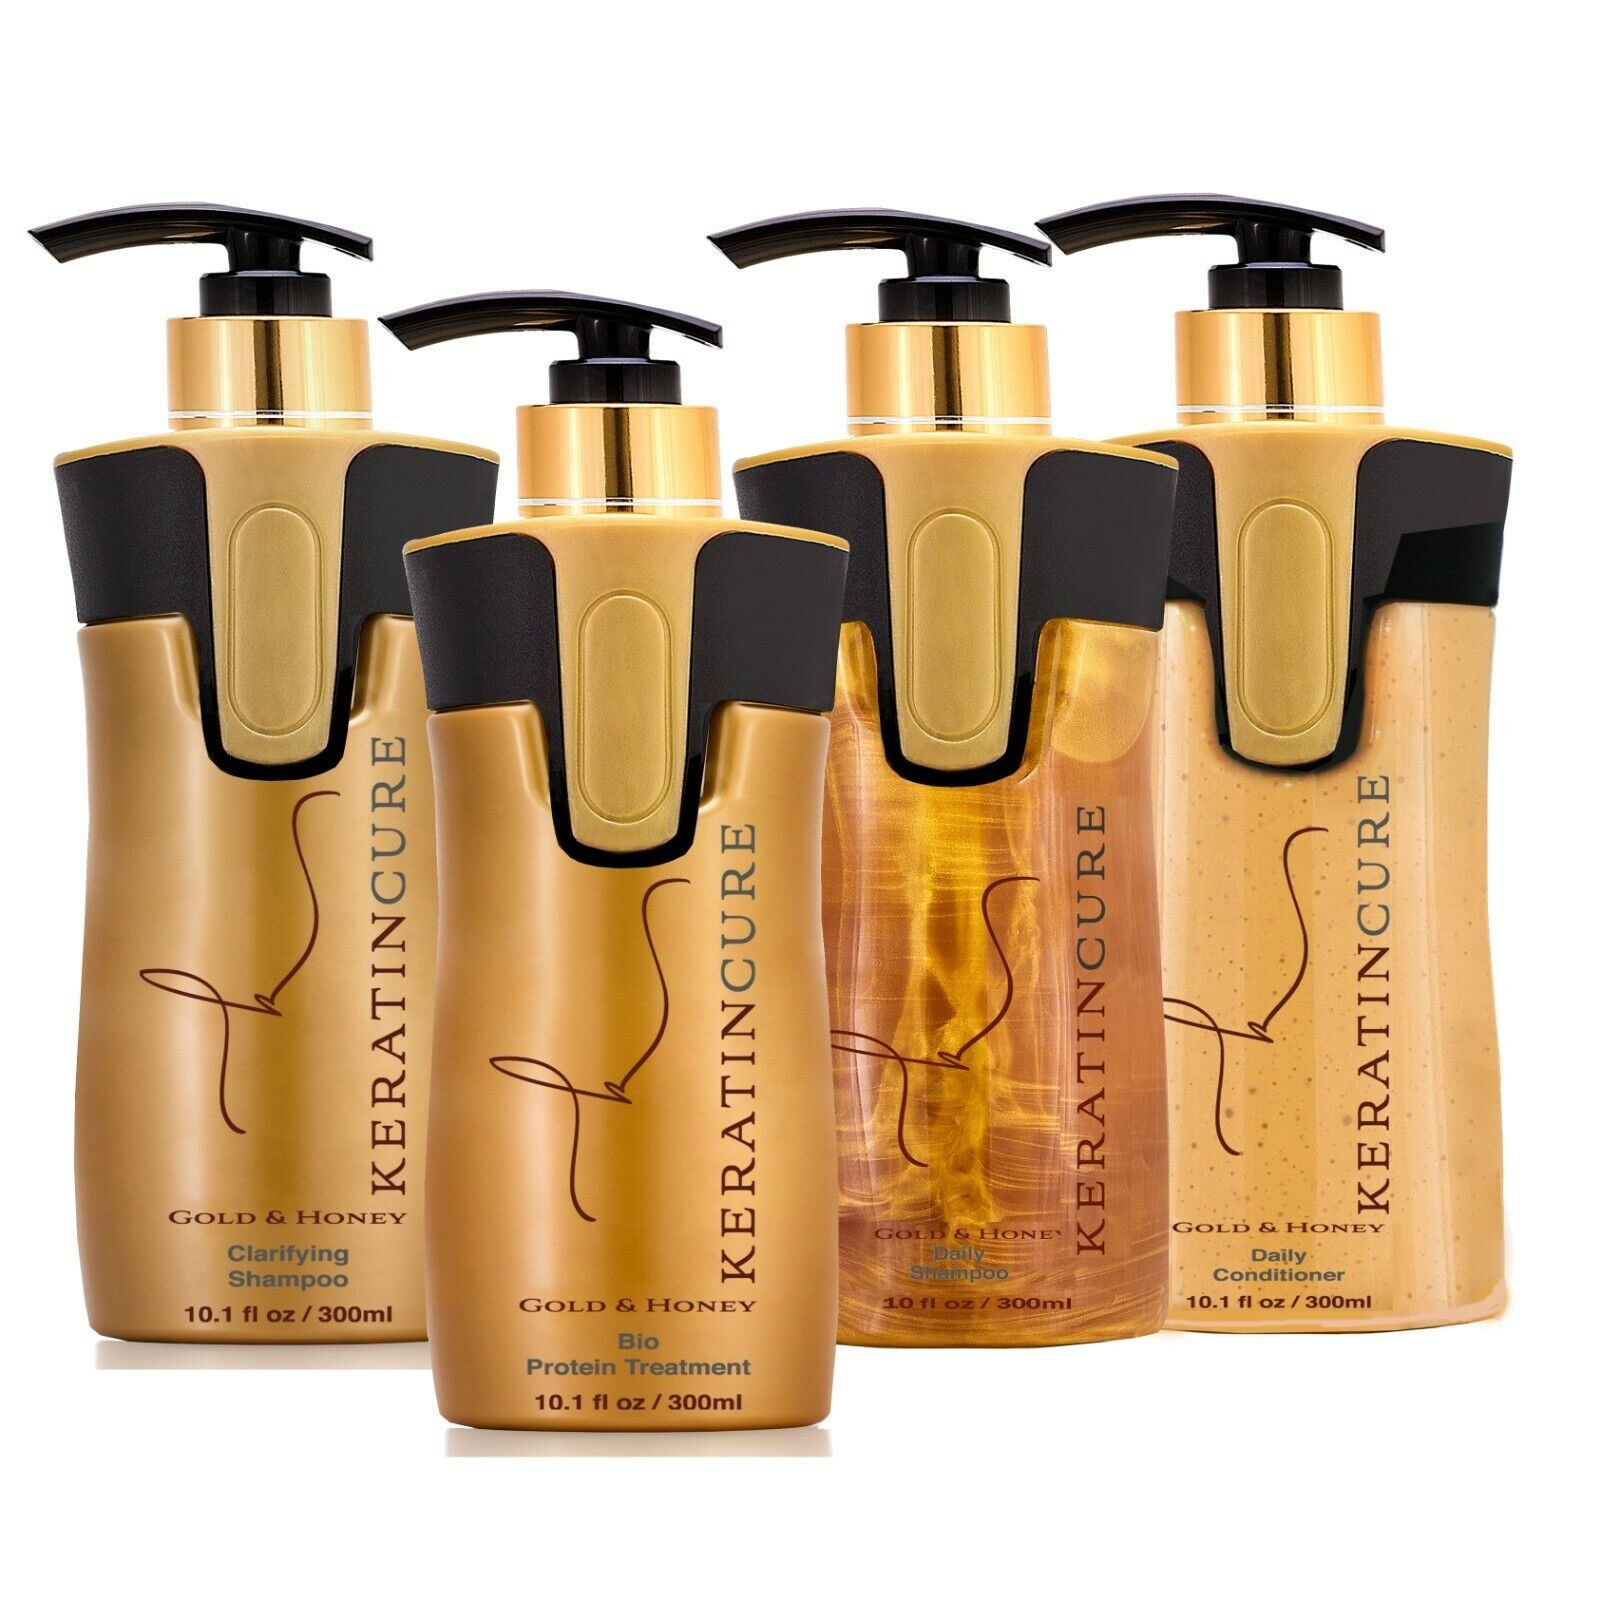 Keratin Cure 0% Formaldehyde 4 Piece Gold & Honey Kit 300ml